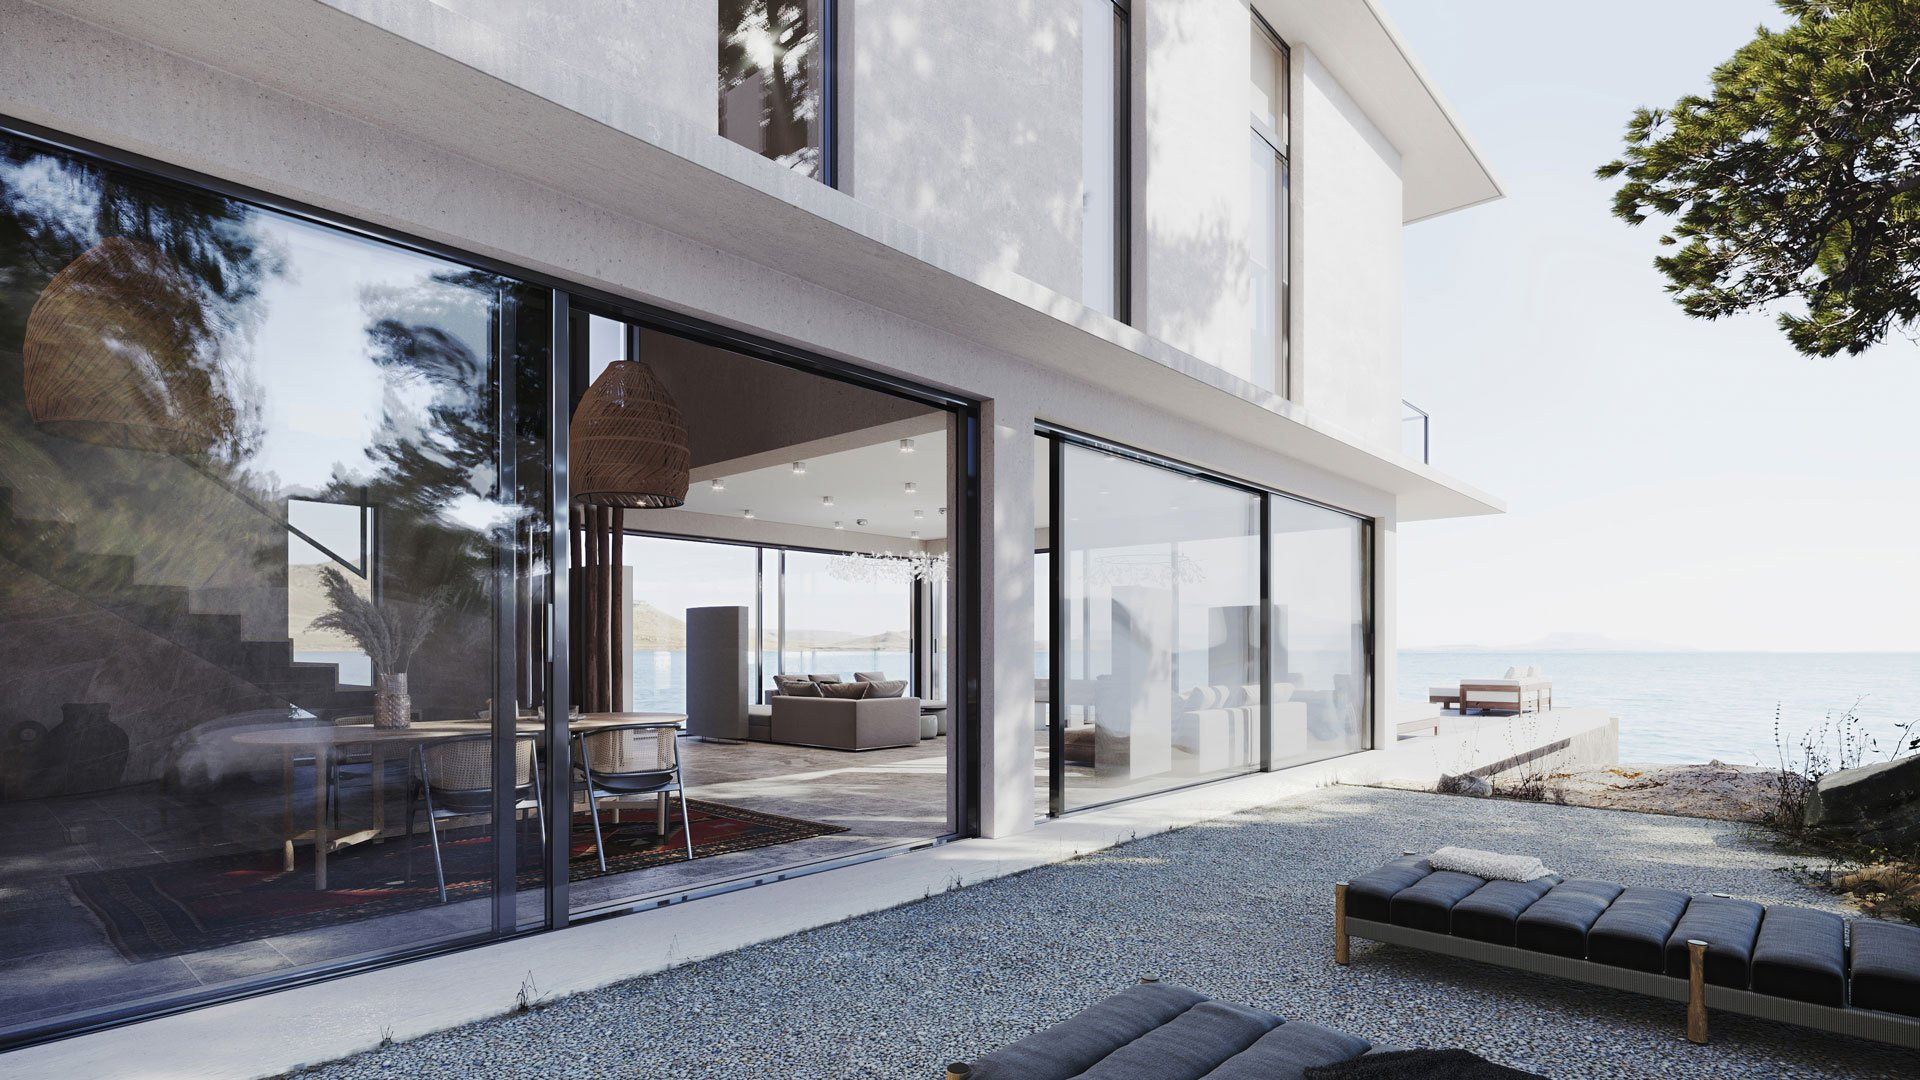 Photoreal Rendering for a Transitional Zone between Interior and Exterior